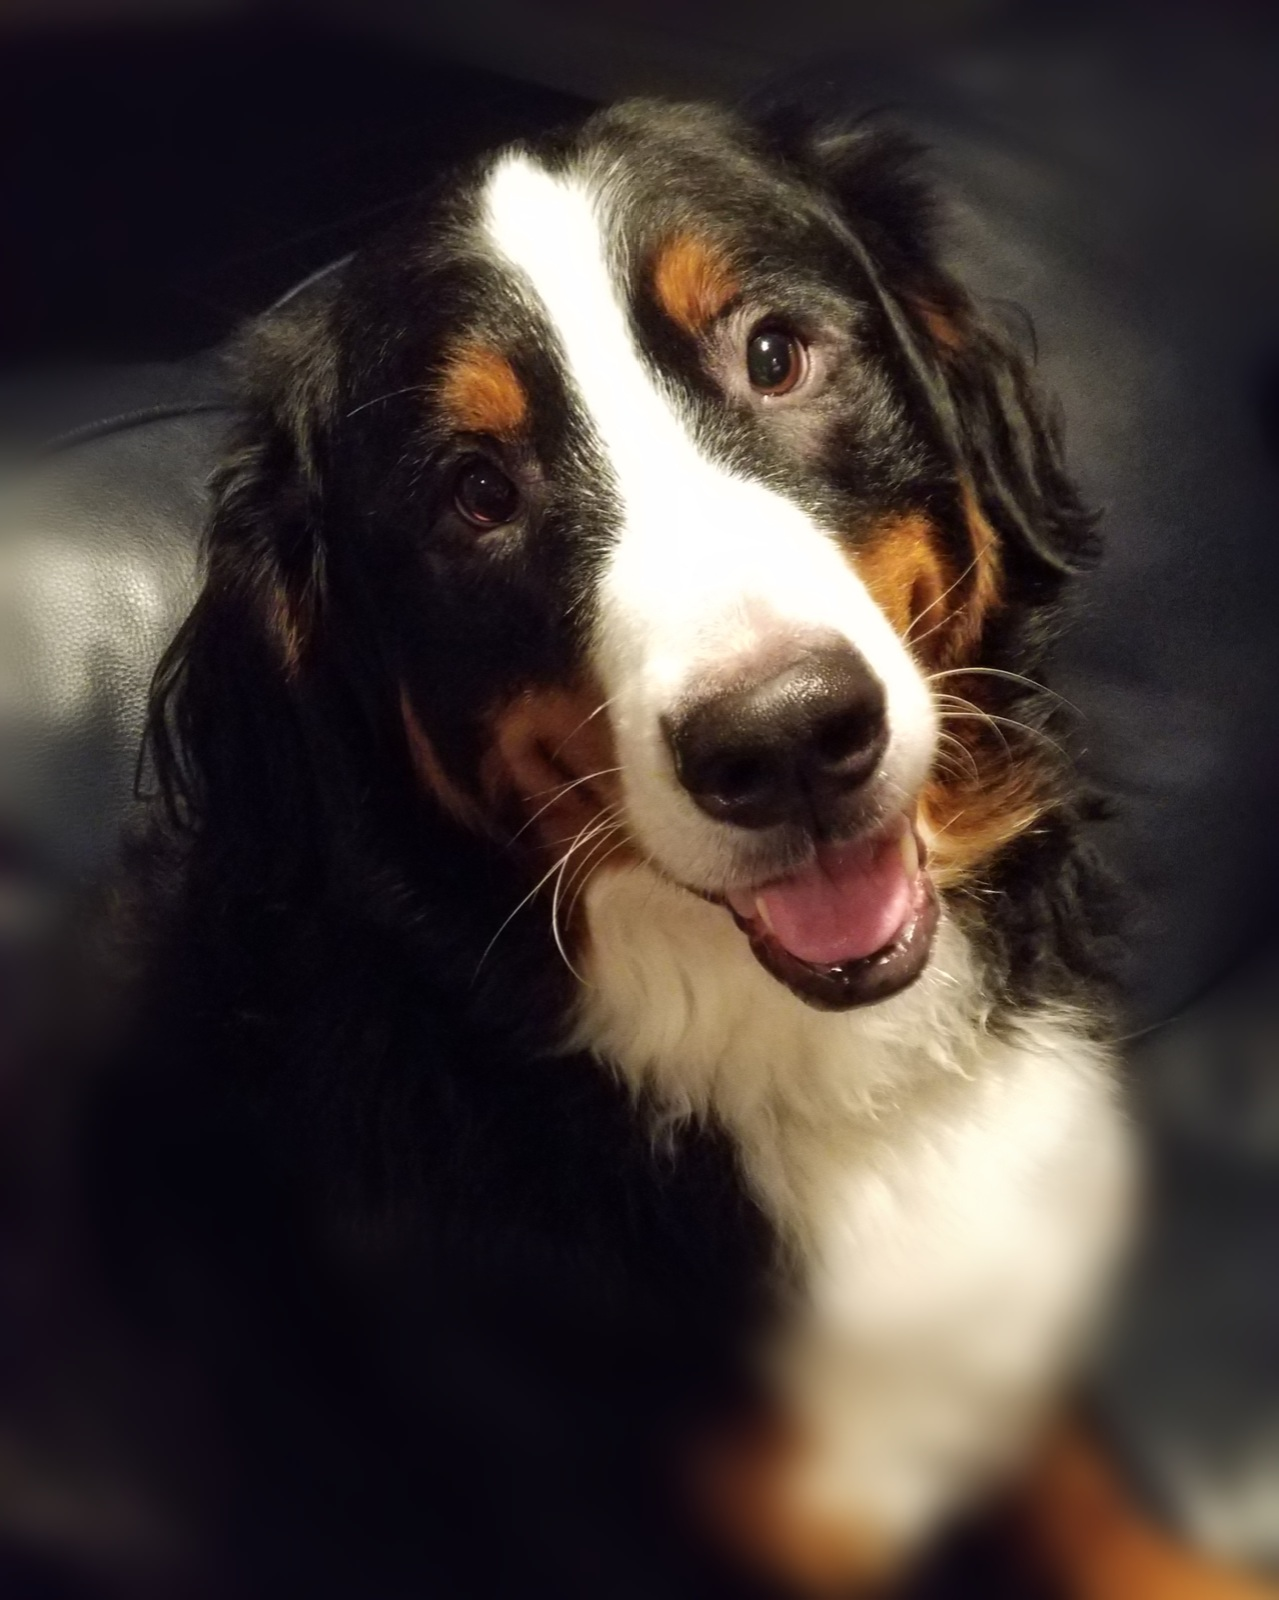 The ABC's of the Bernese: Affectionate, Beautiful and Colorful